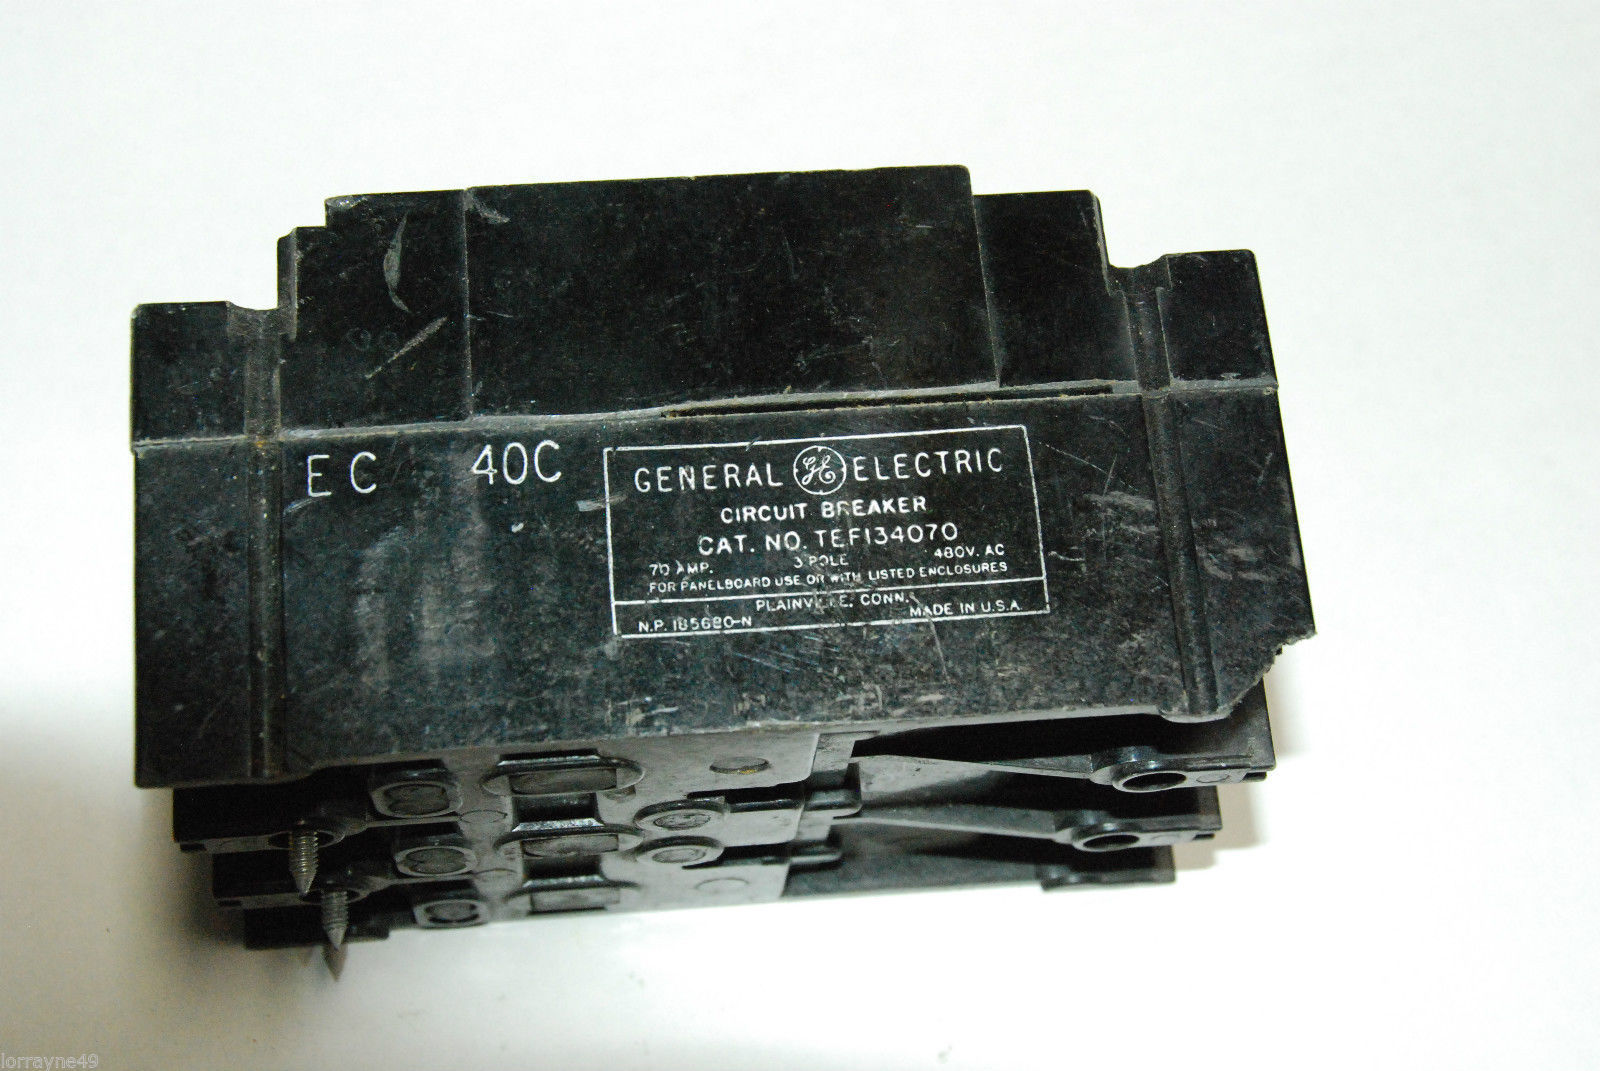 General Electric Tef134070 70amp 480v Volt And 50 Similar Items About Siemens Murray Mp3030 30 Amp Single Pole Circuit Breaker 2 Molded Case 70a